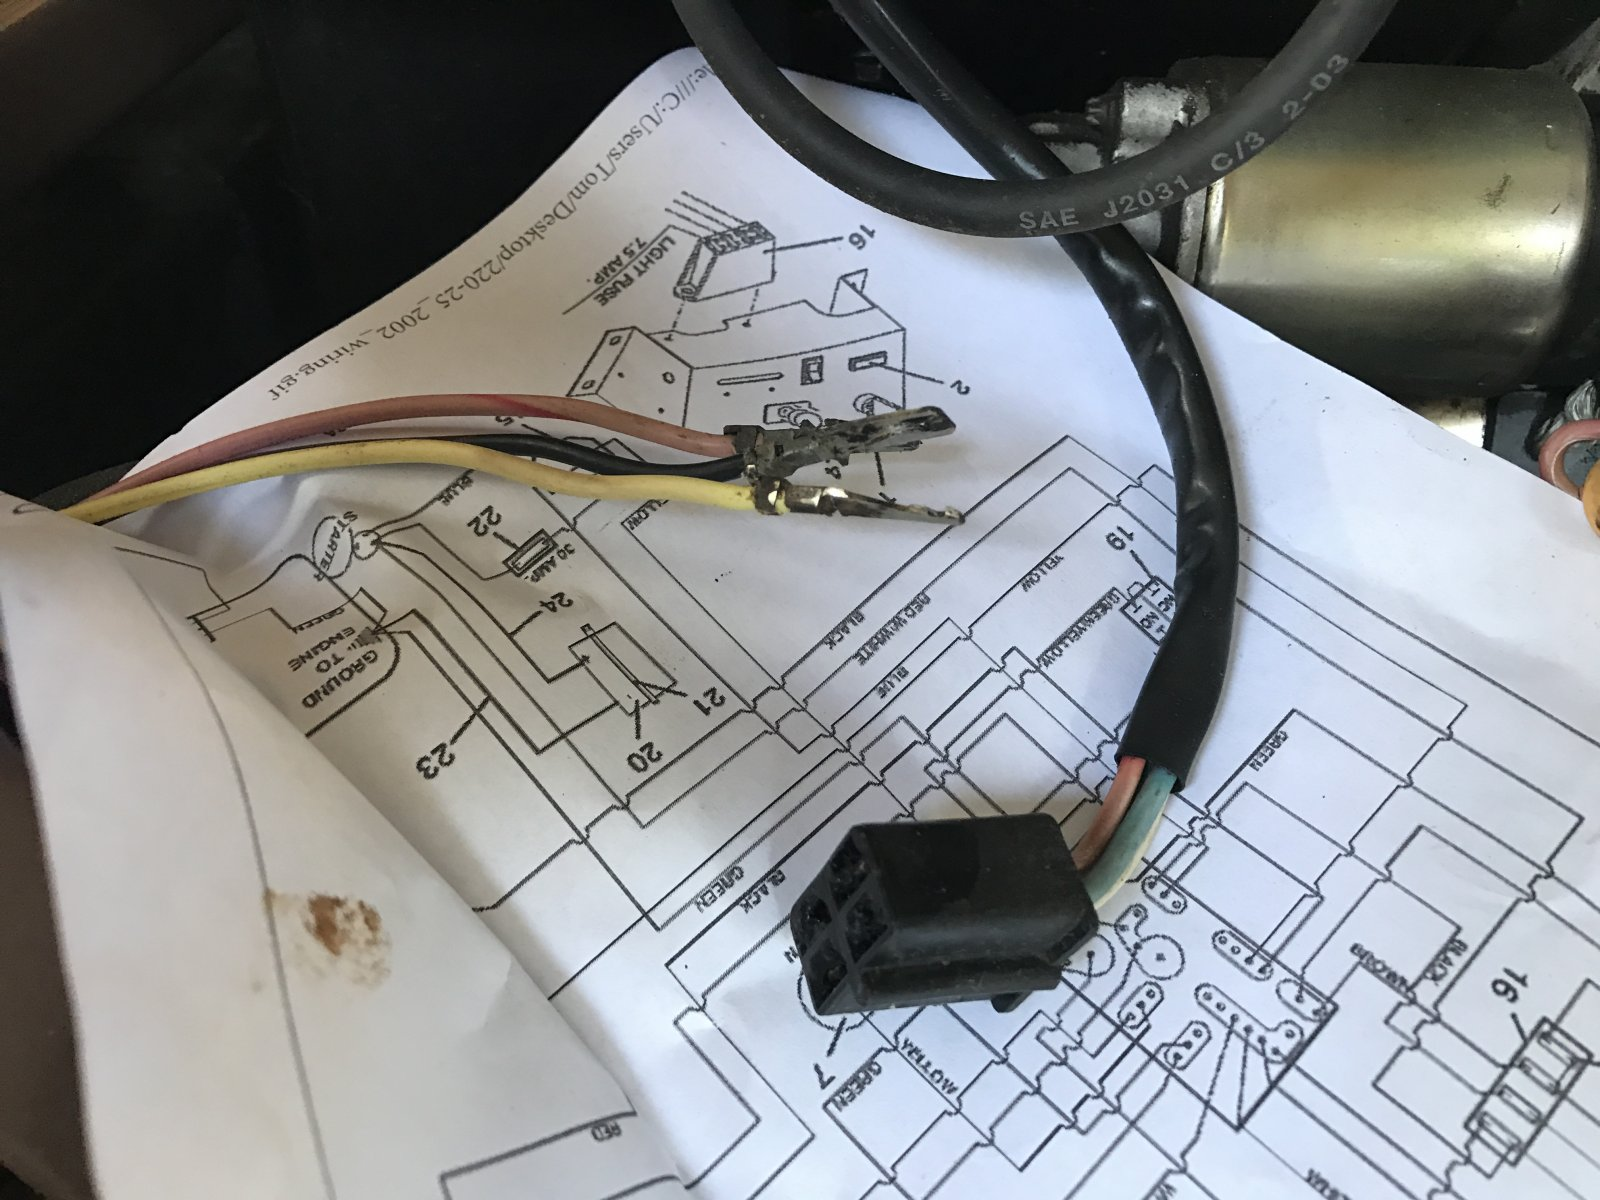 Grasshopper 225 Wiring Reg Mag Solenoid Plug Lawnsite Mower Diagram They Into The That Says It Is For But There Are Also 4 Wires Not Sure If Was A Jumper In Or